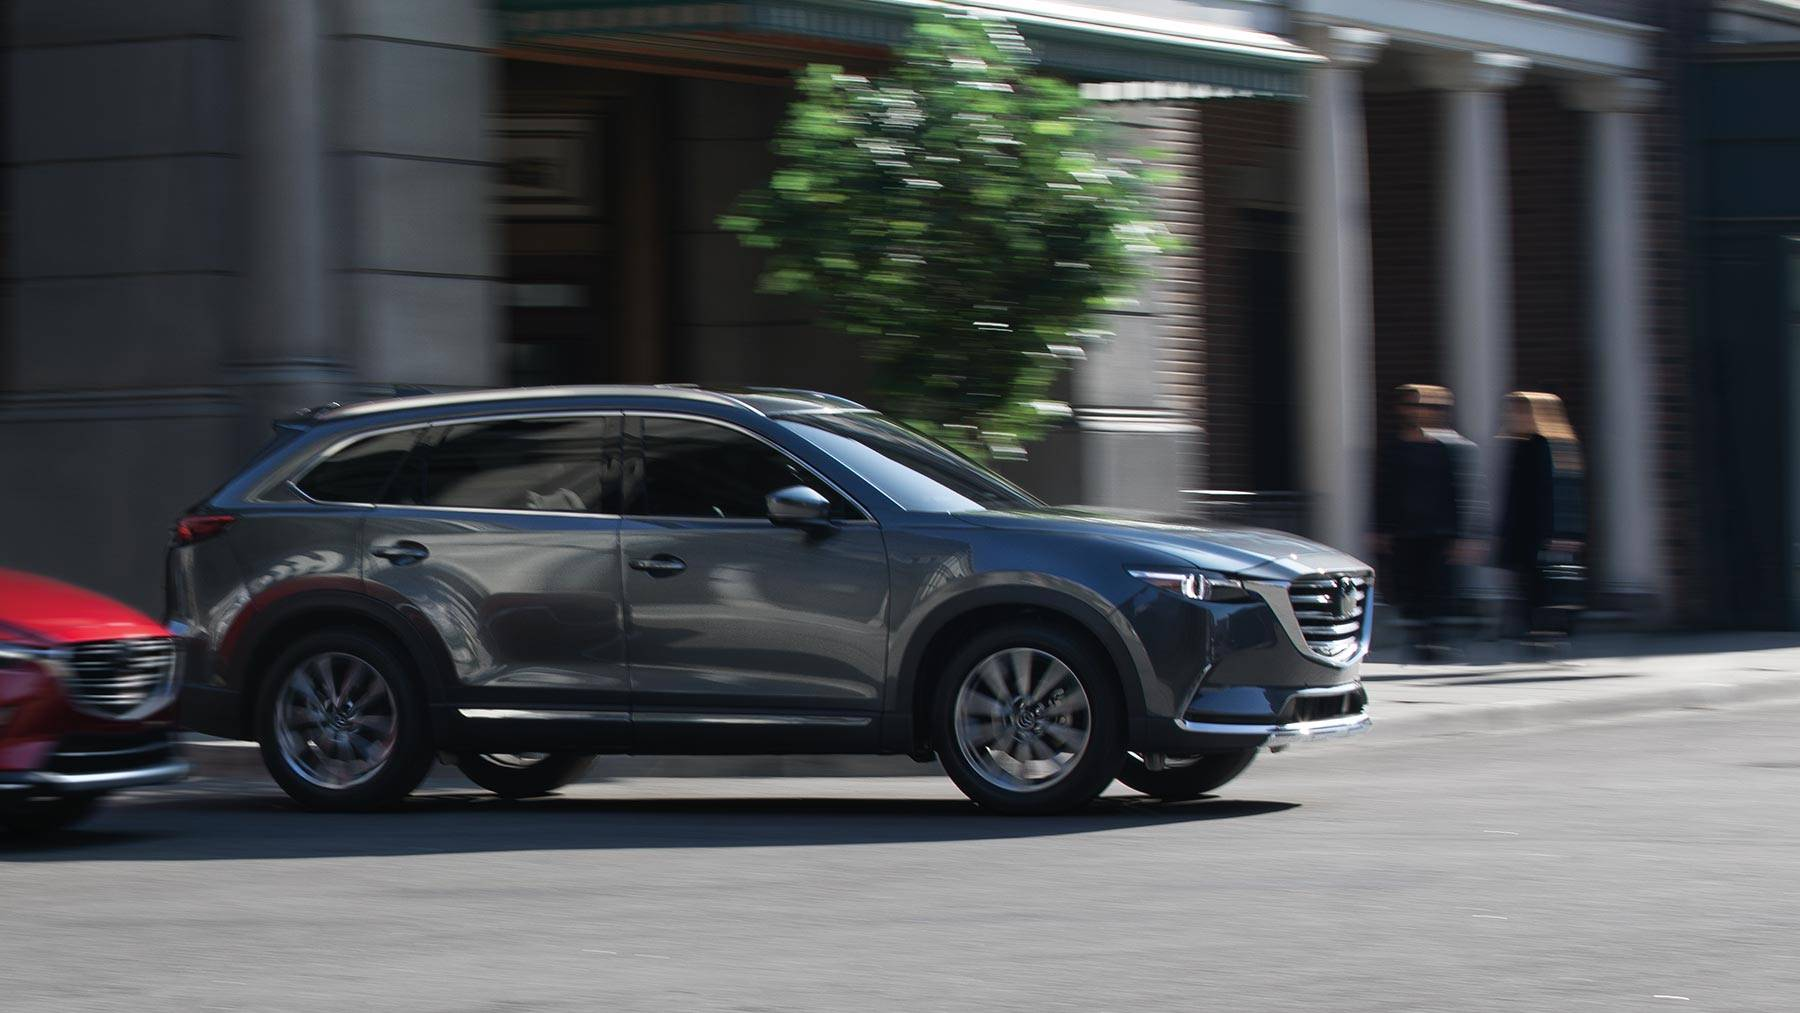 2019 Mazda Cx 9 7 Seater Car